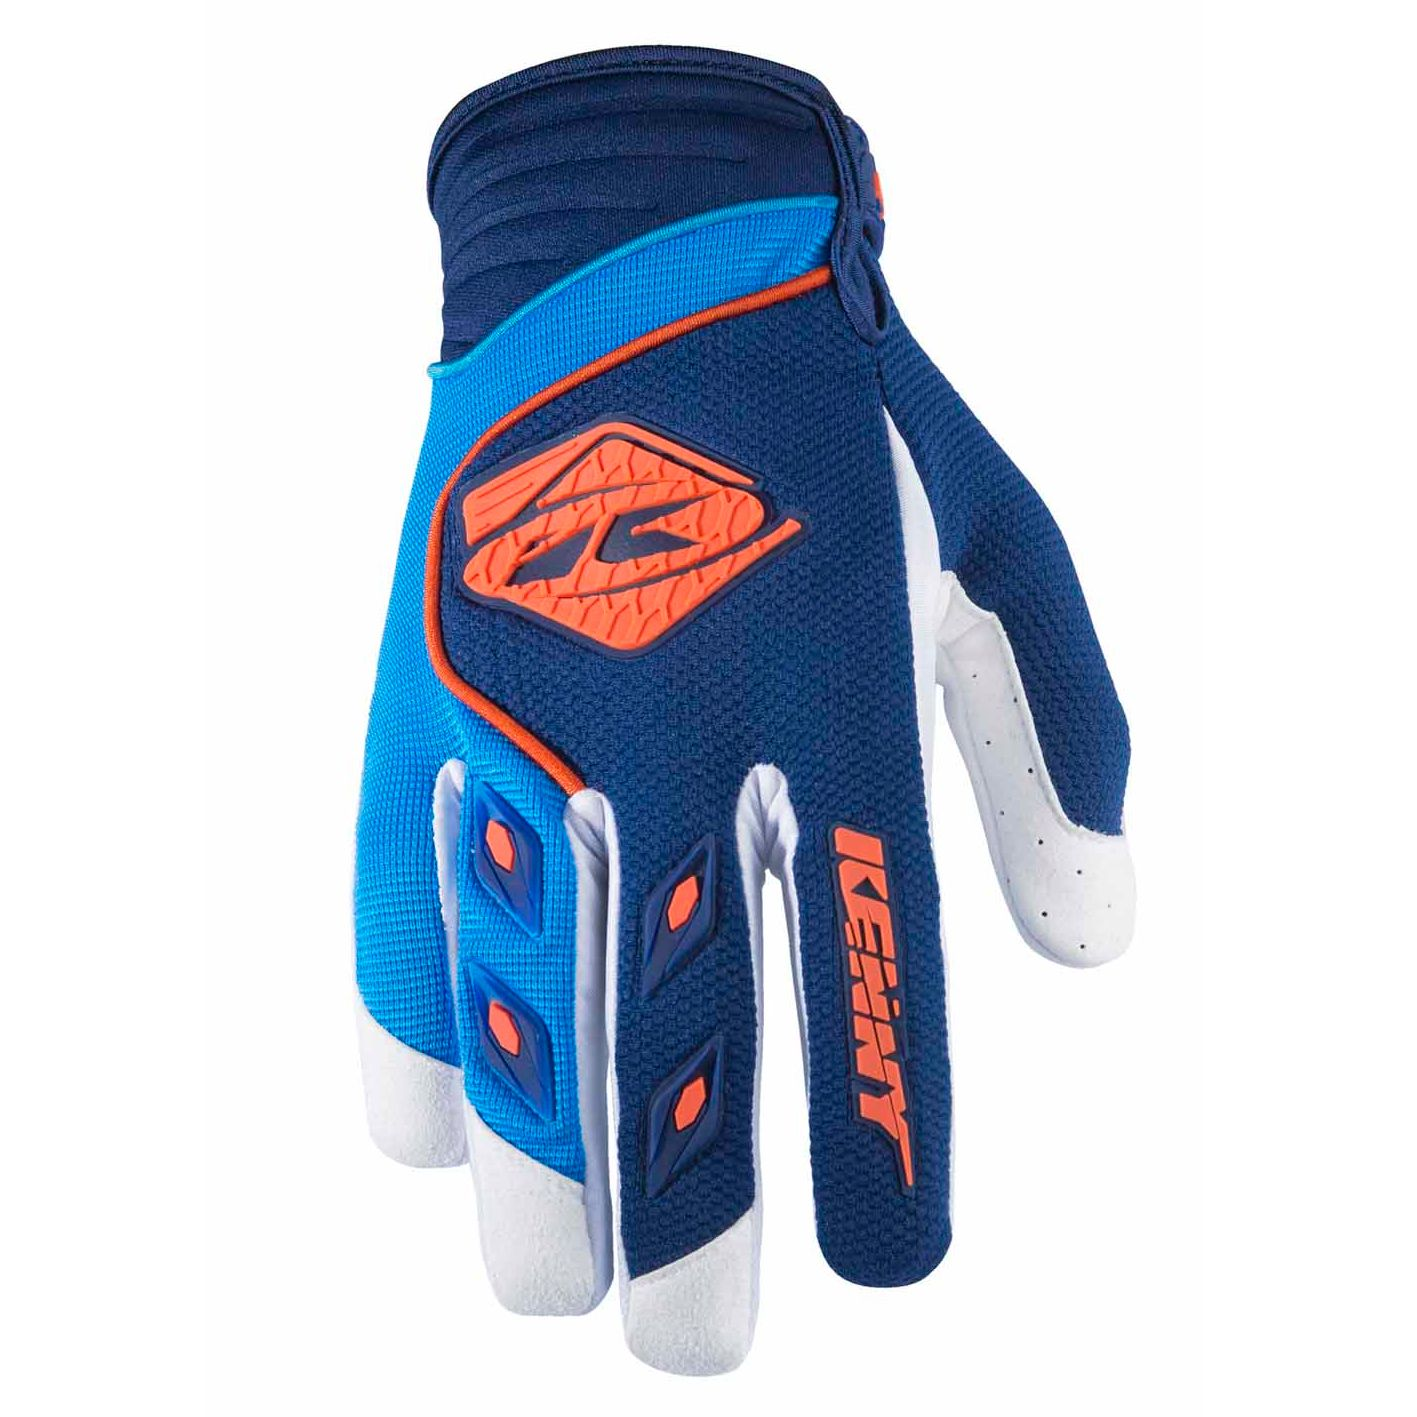 Gants cross Kenny destockage TRACK YOUTH - NAVY / CYAN / ORANGE -